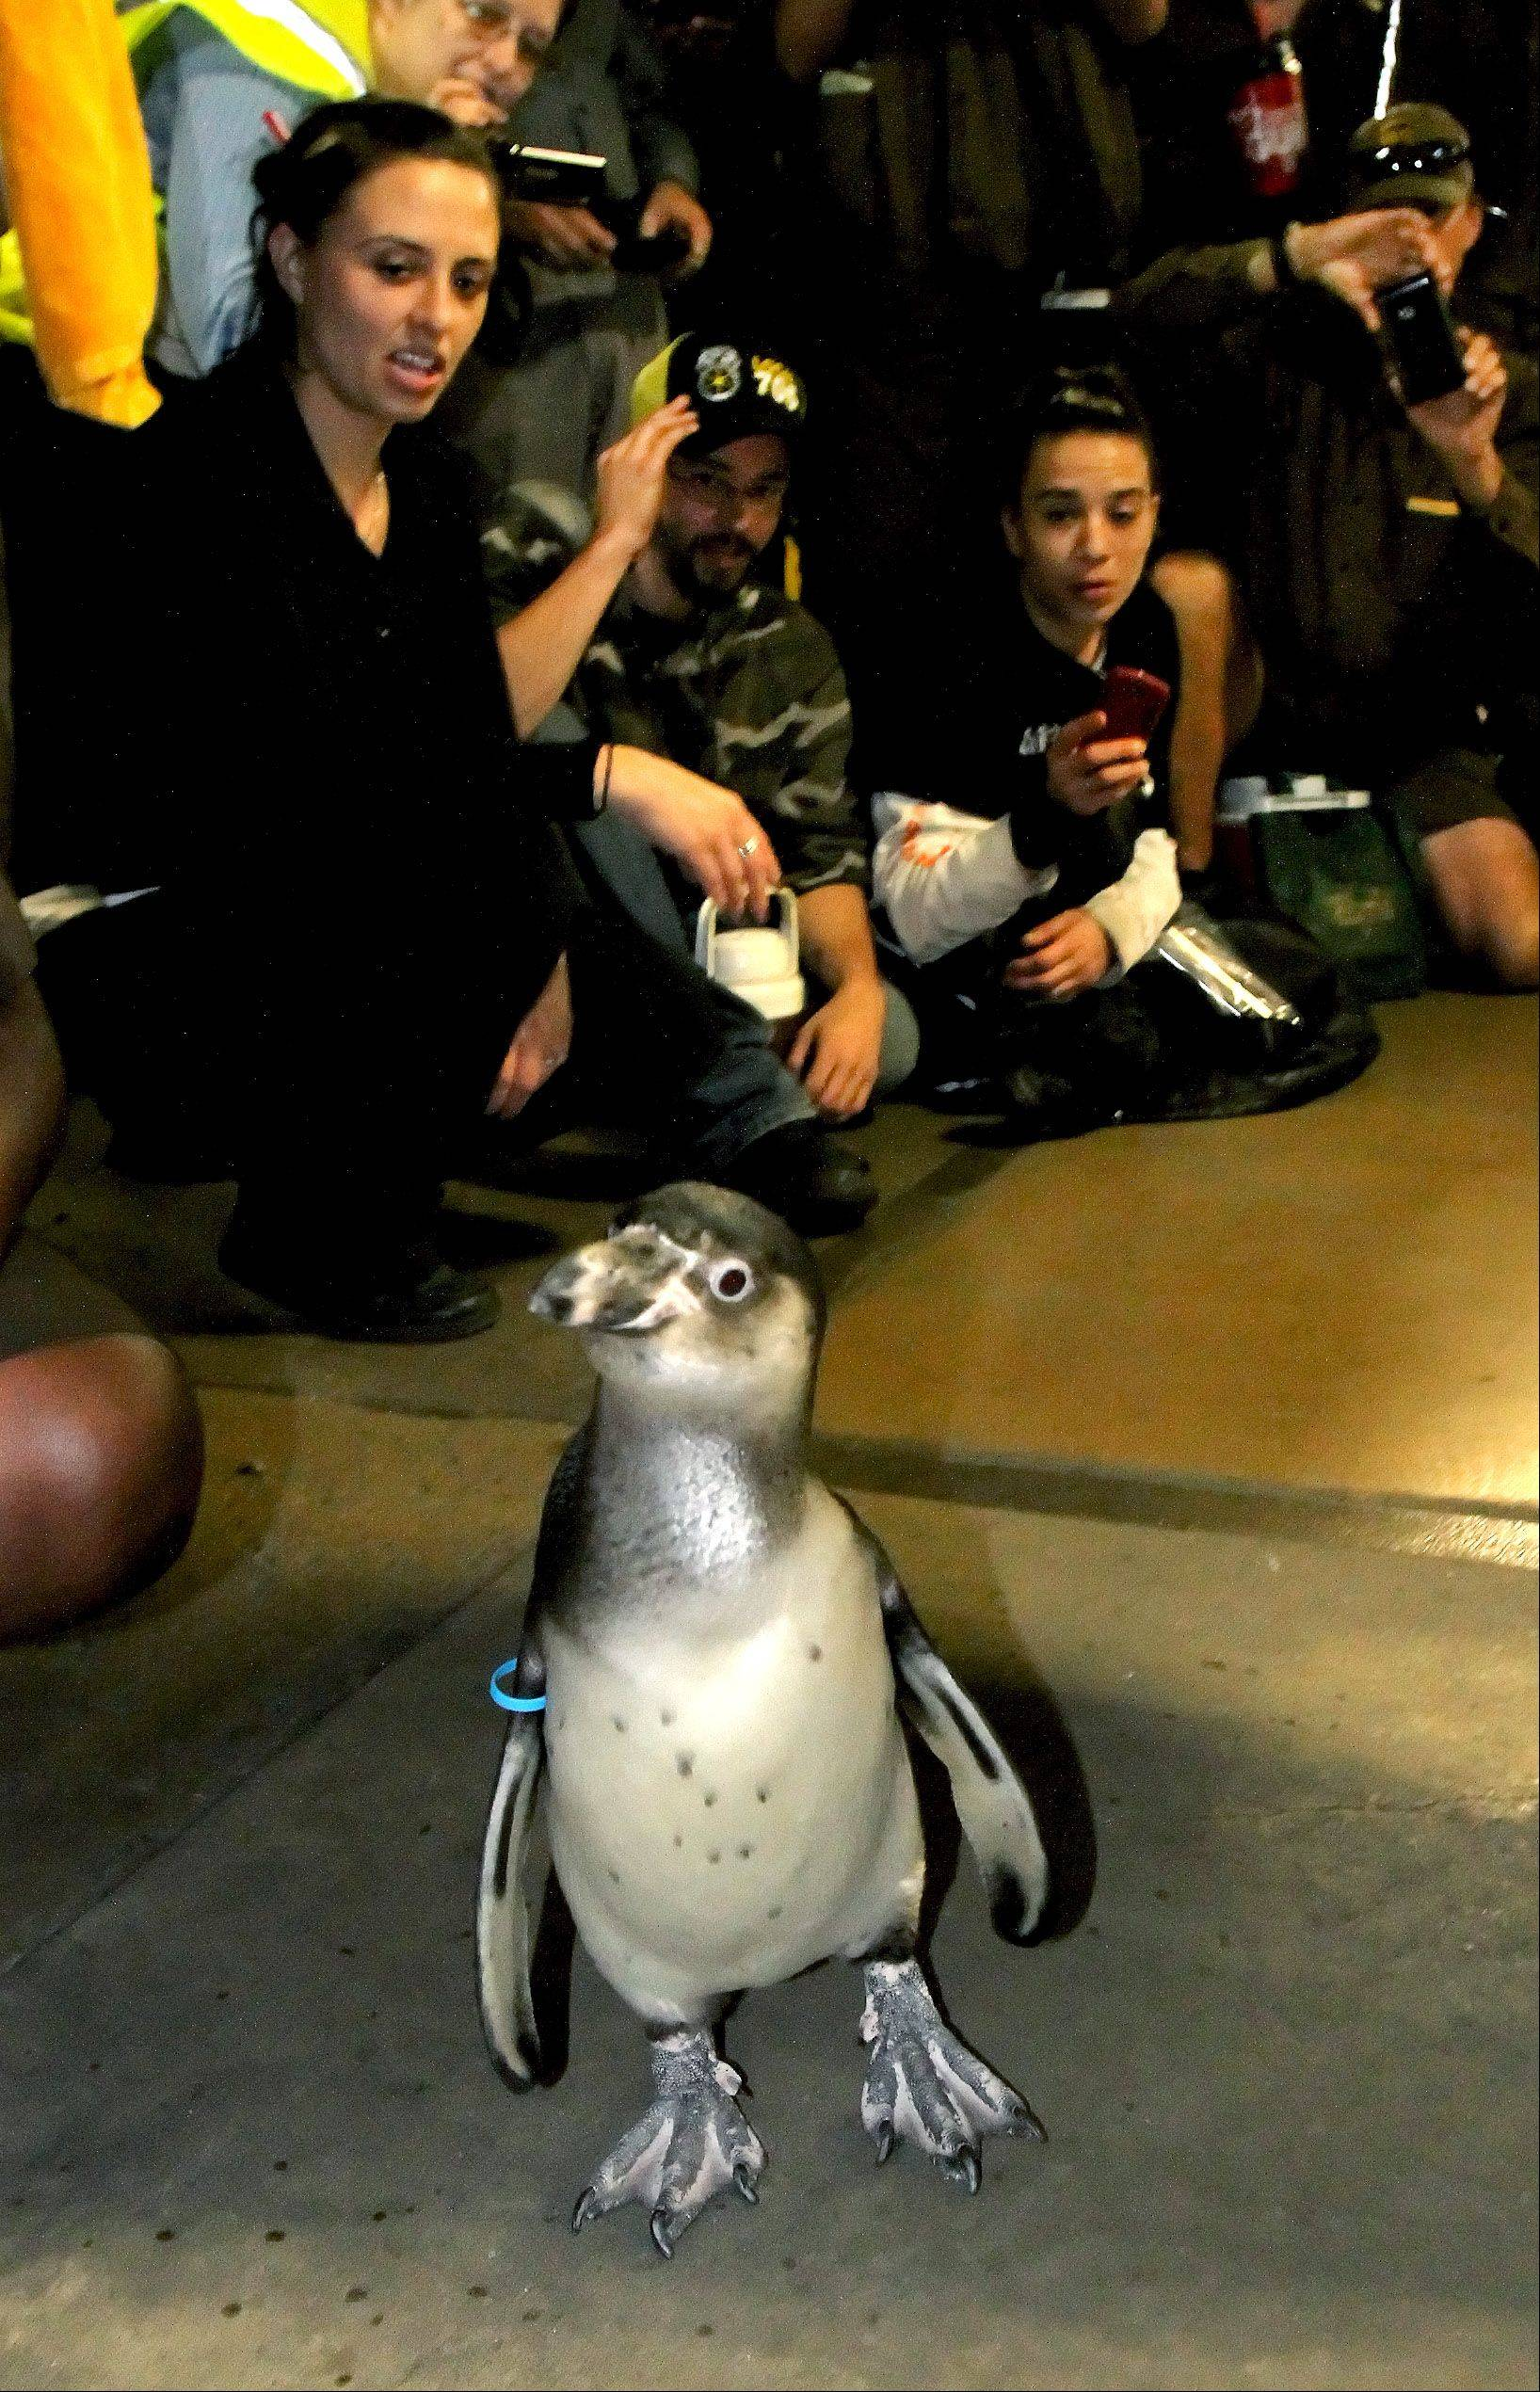 Pepe, a 6-month-old Humboldt penguin from Brookfield Zoo, shows UPS employees in Addison exactly how to walk in slippery conditions.